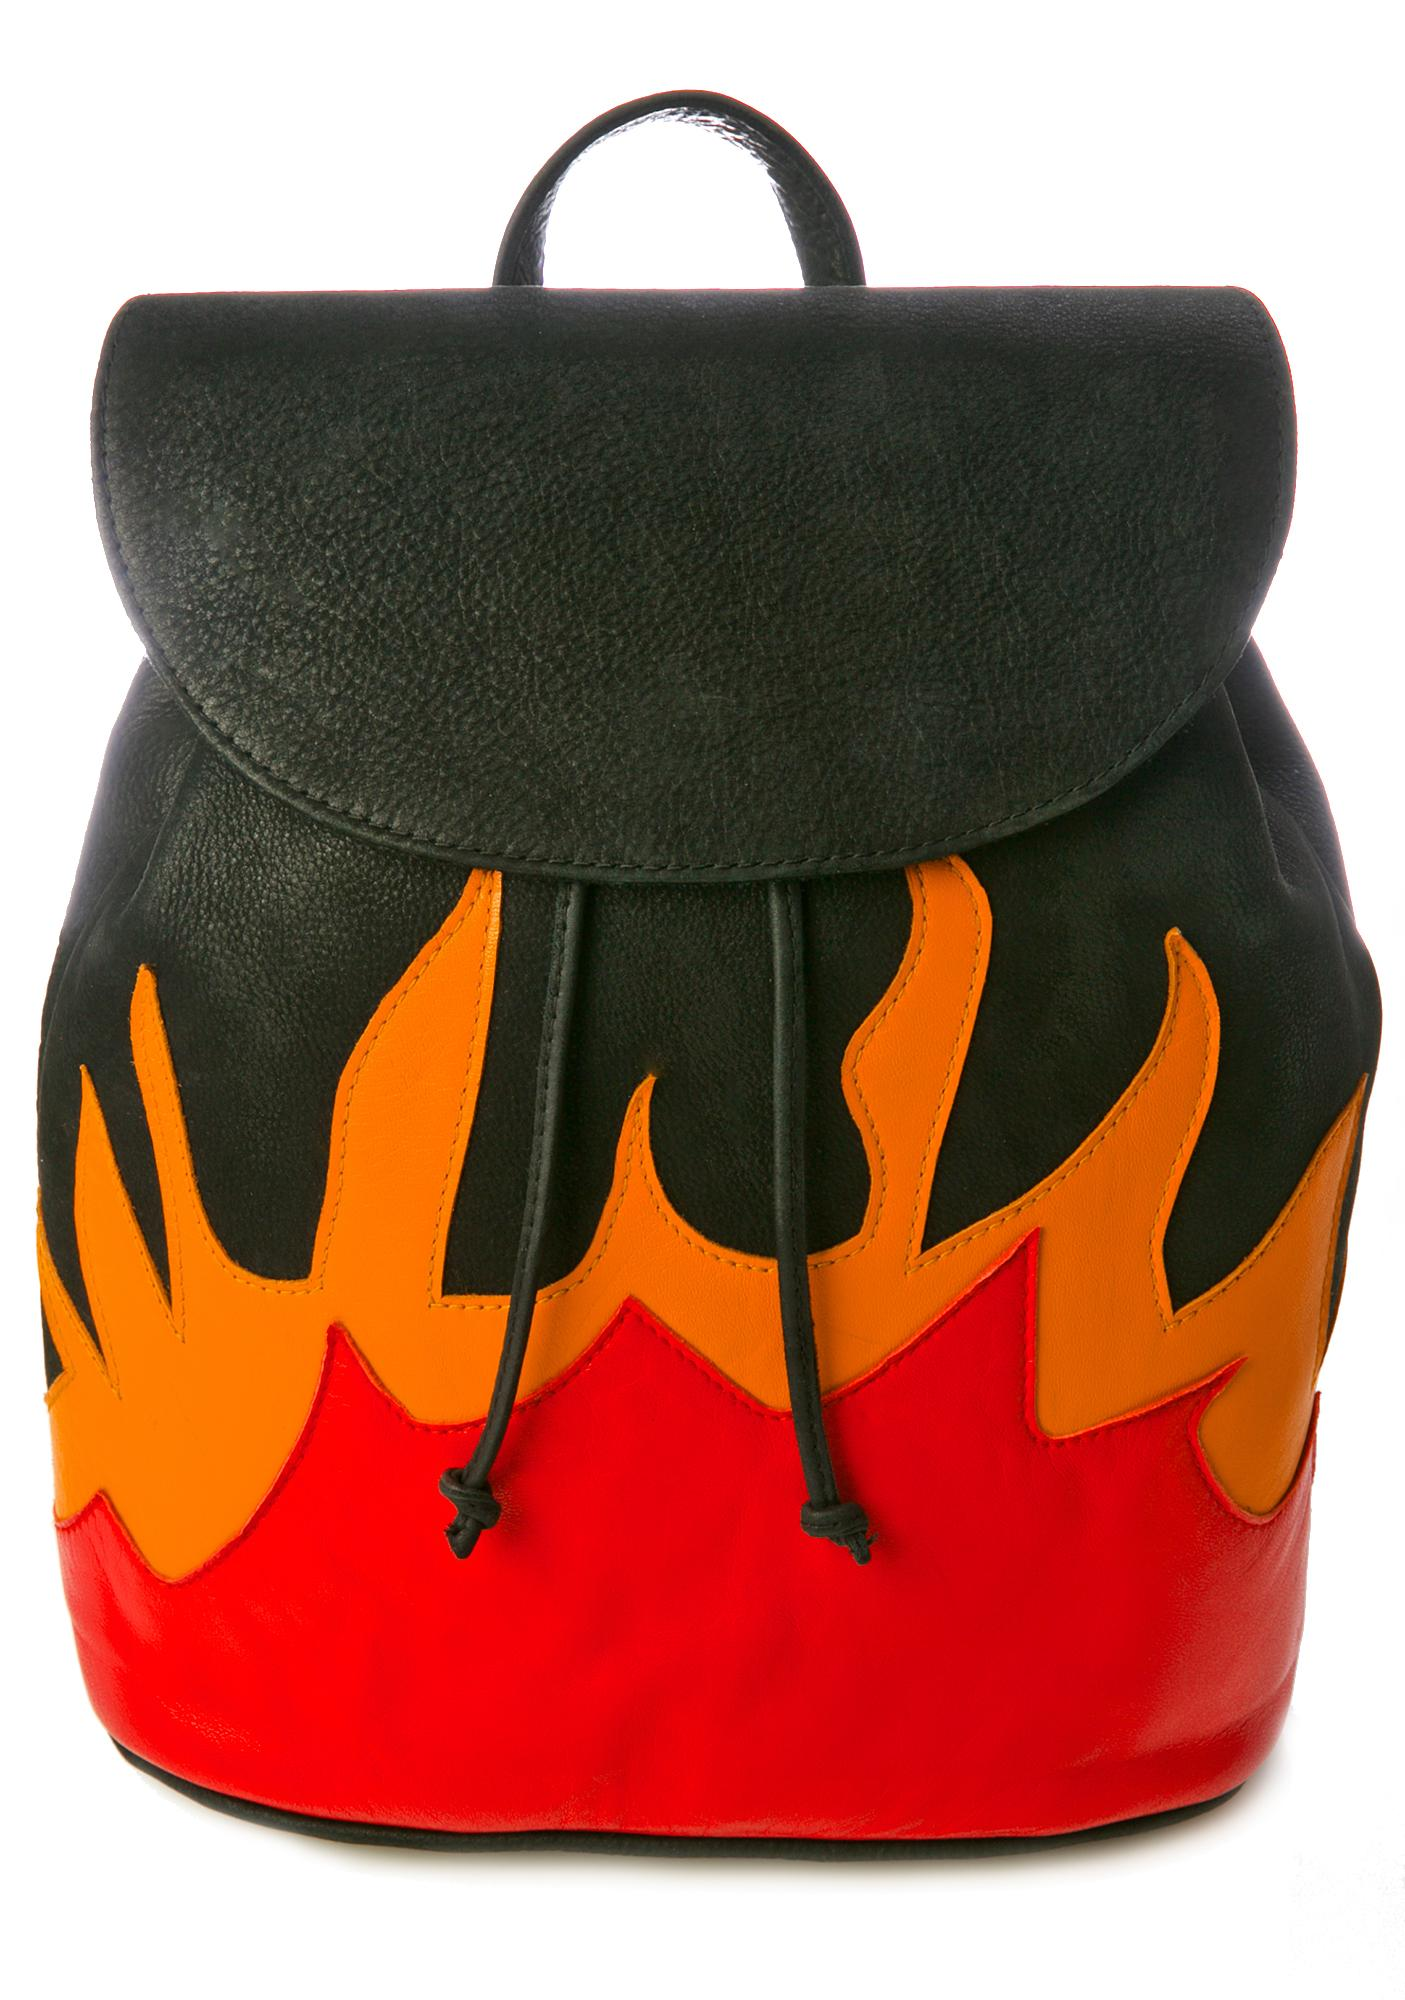 American Vintage Leather Flame Backpack